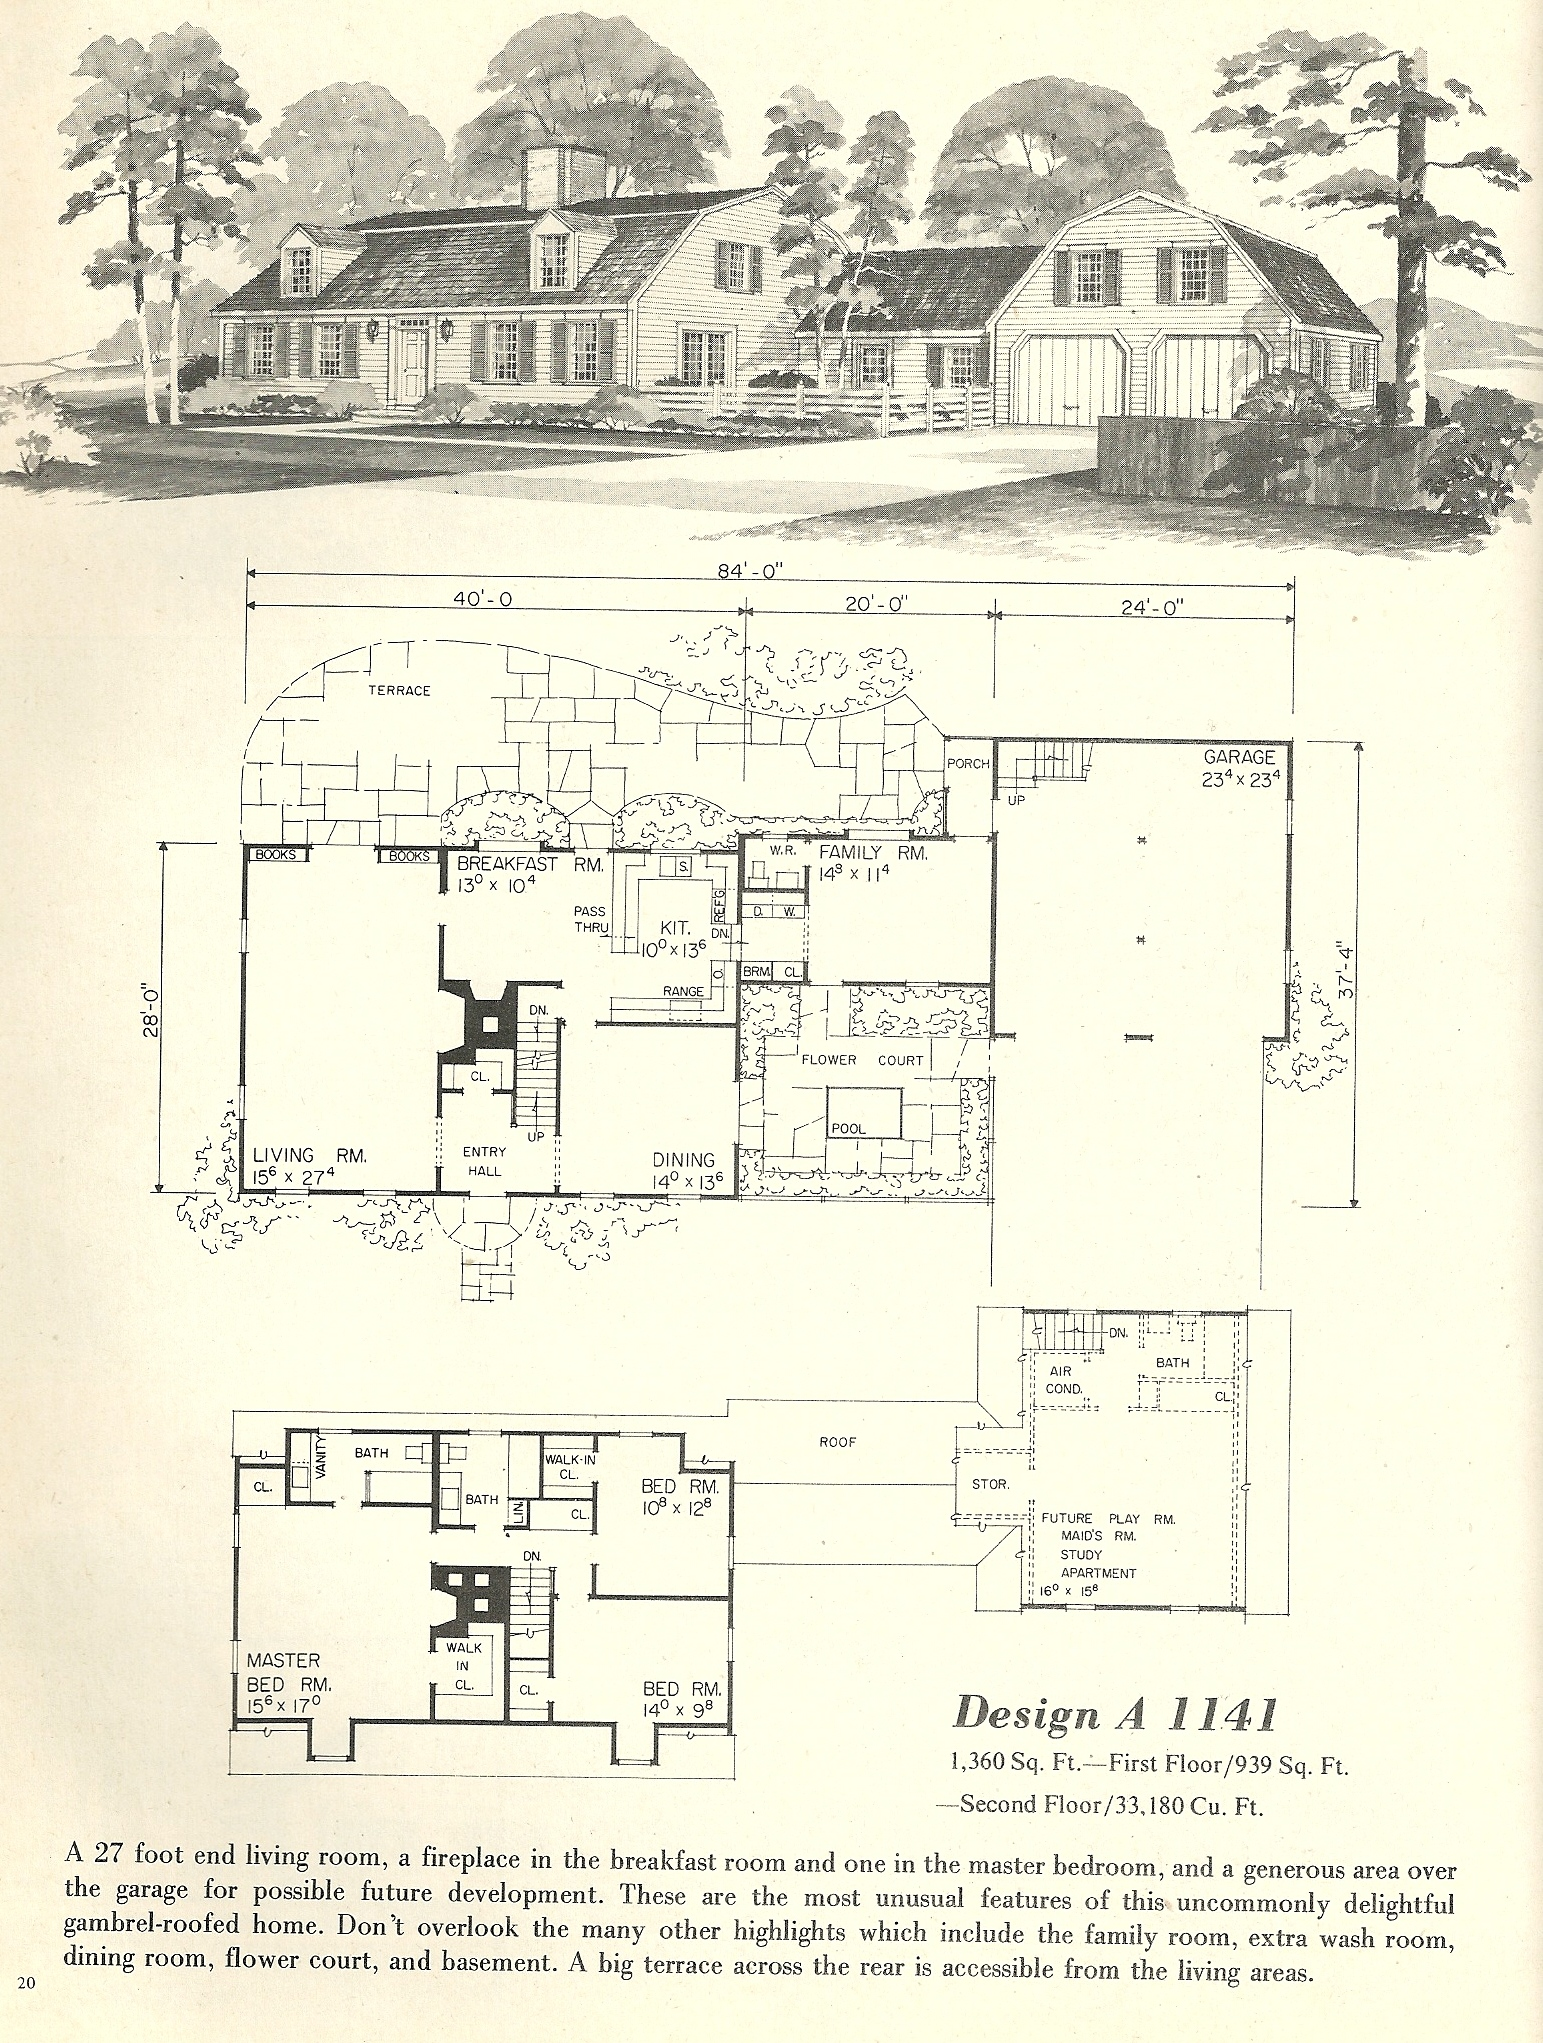 vintage house plans 1141 antique alter ego On antique house floor plans